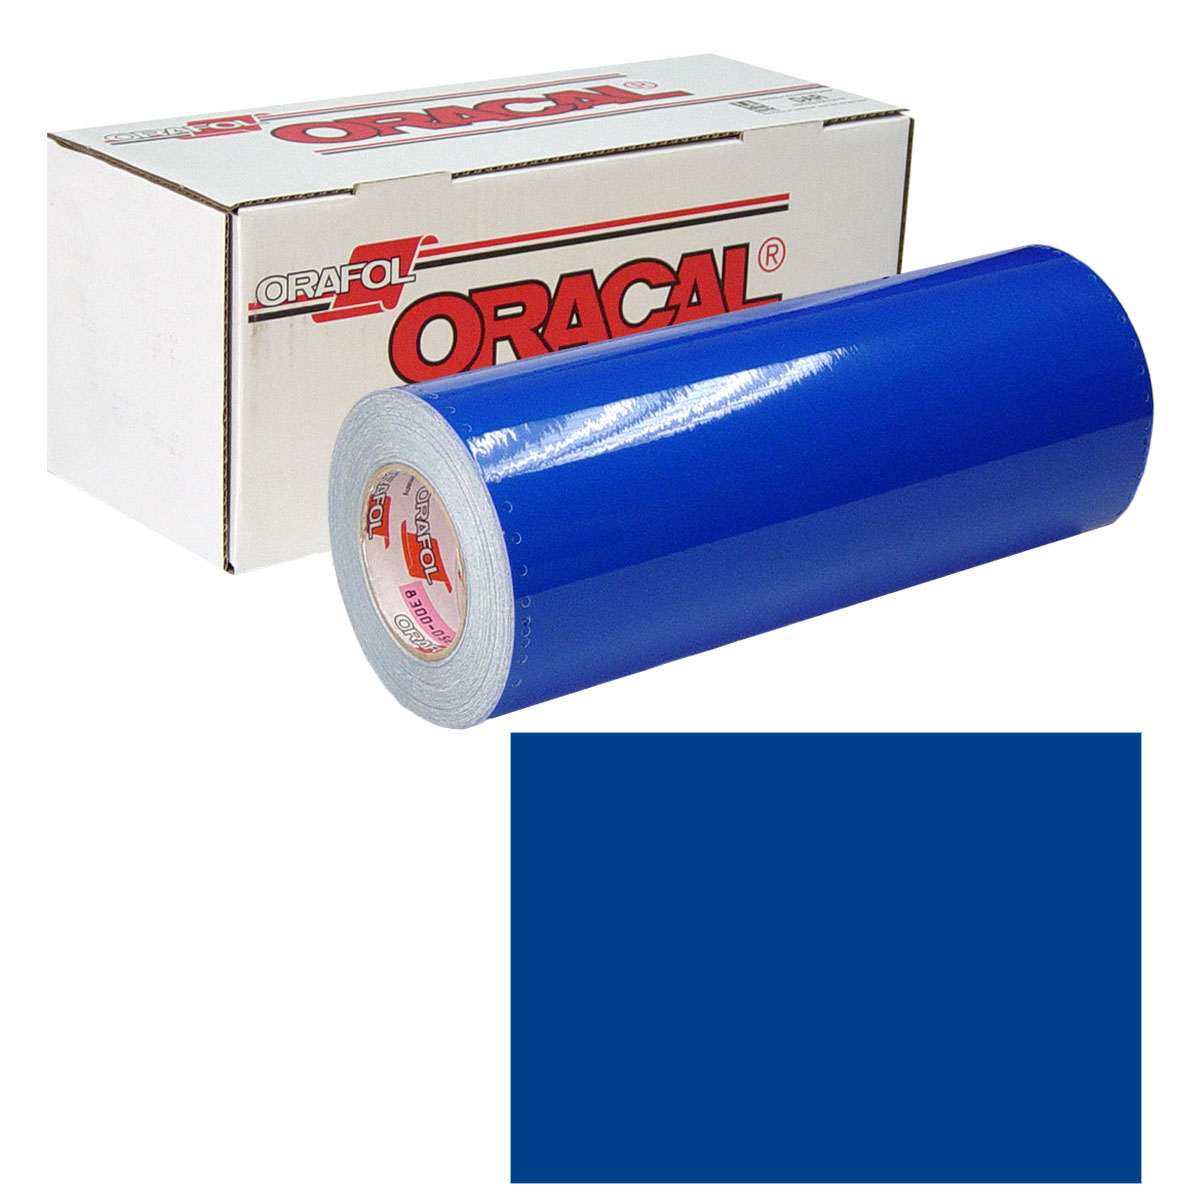 ORACAL 631 Unp 24in X 10yd 057 Traffic Blue